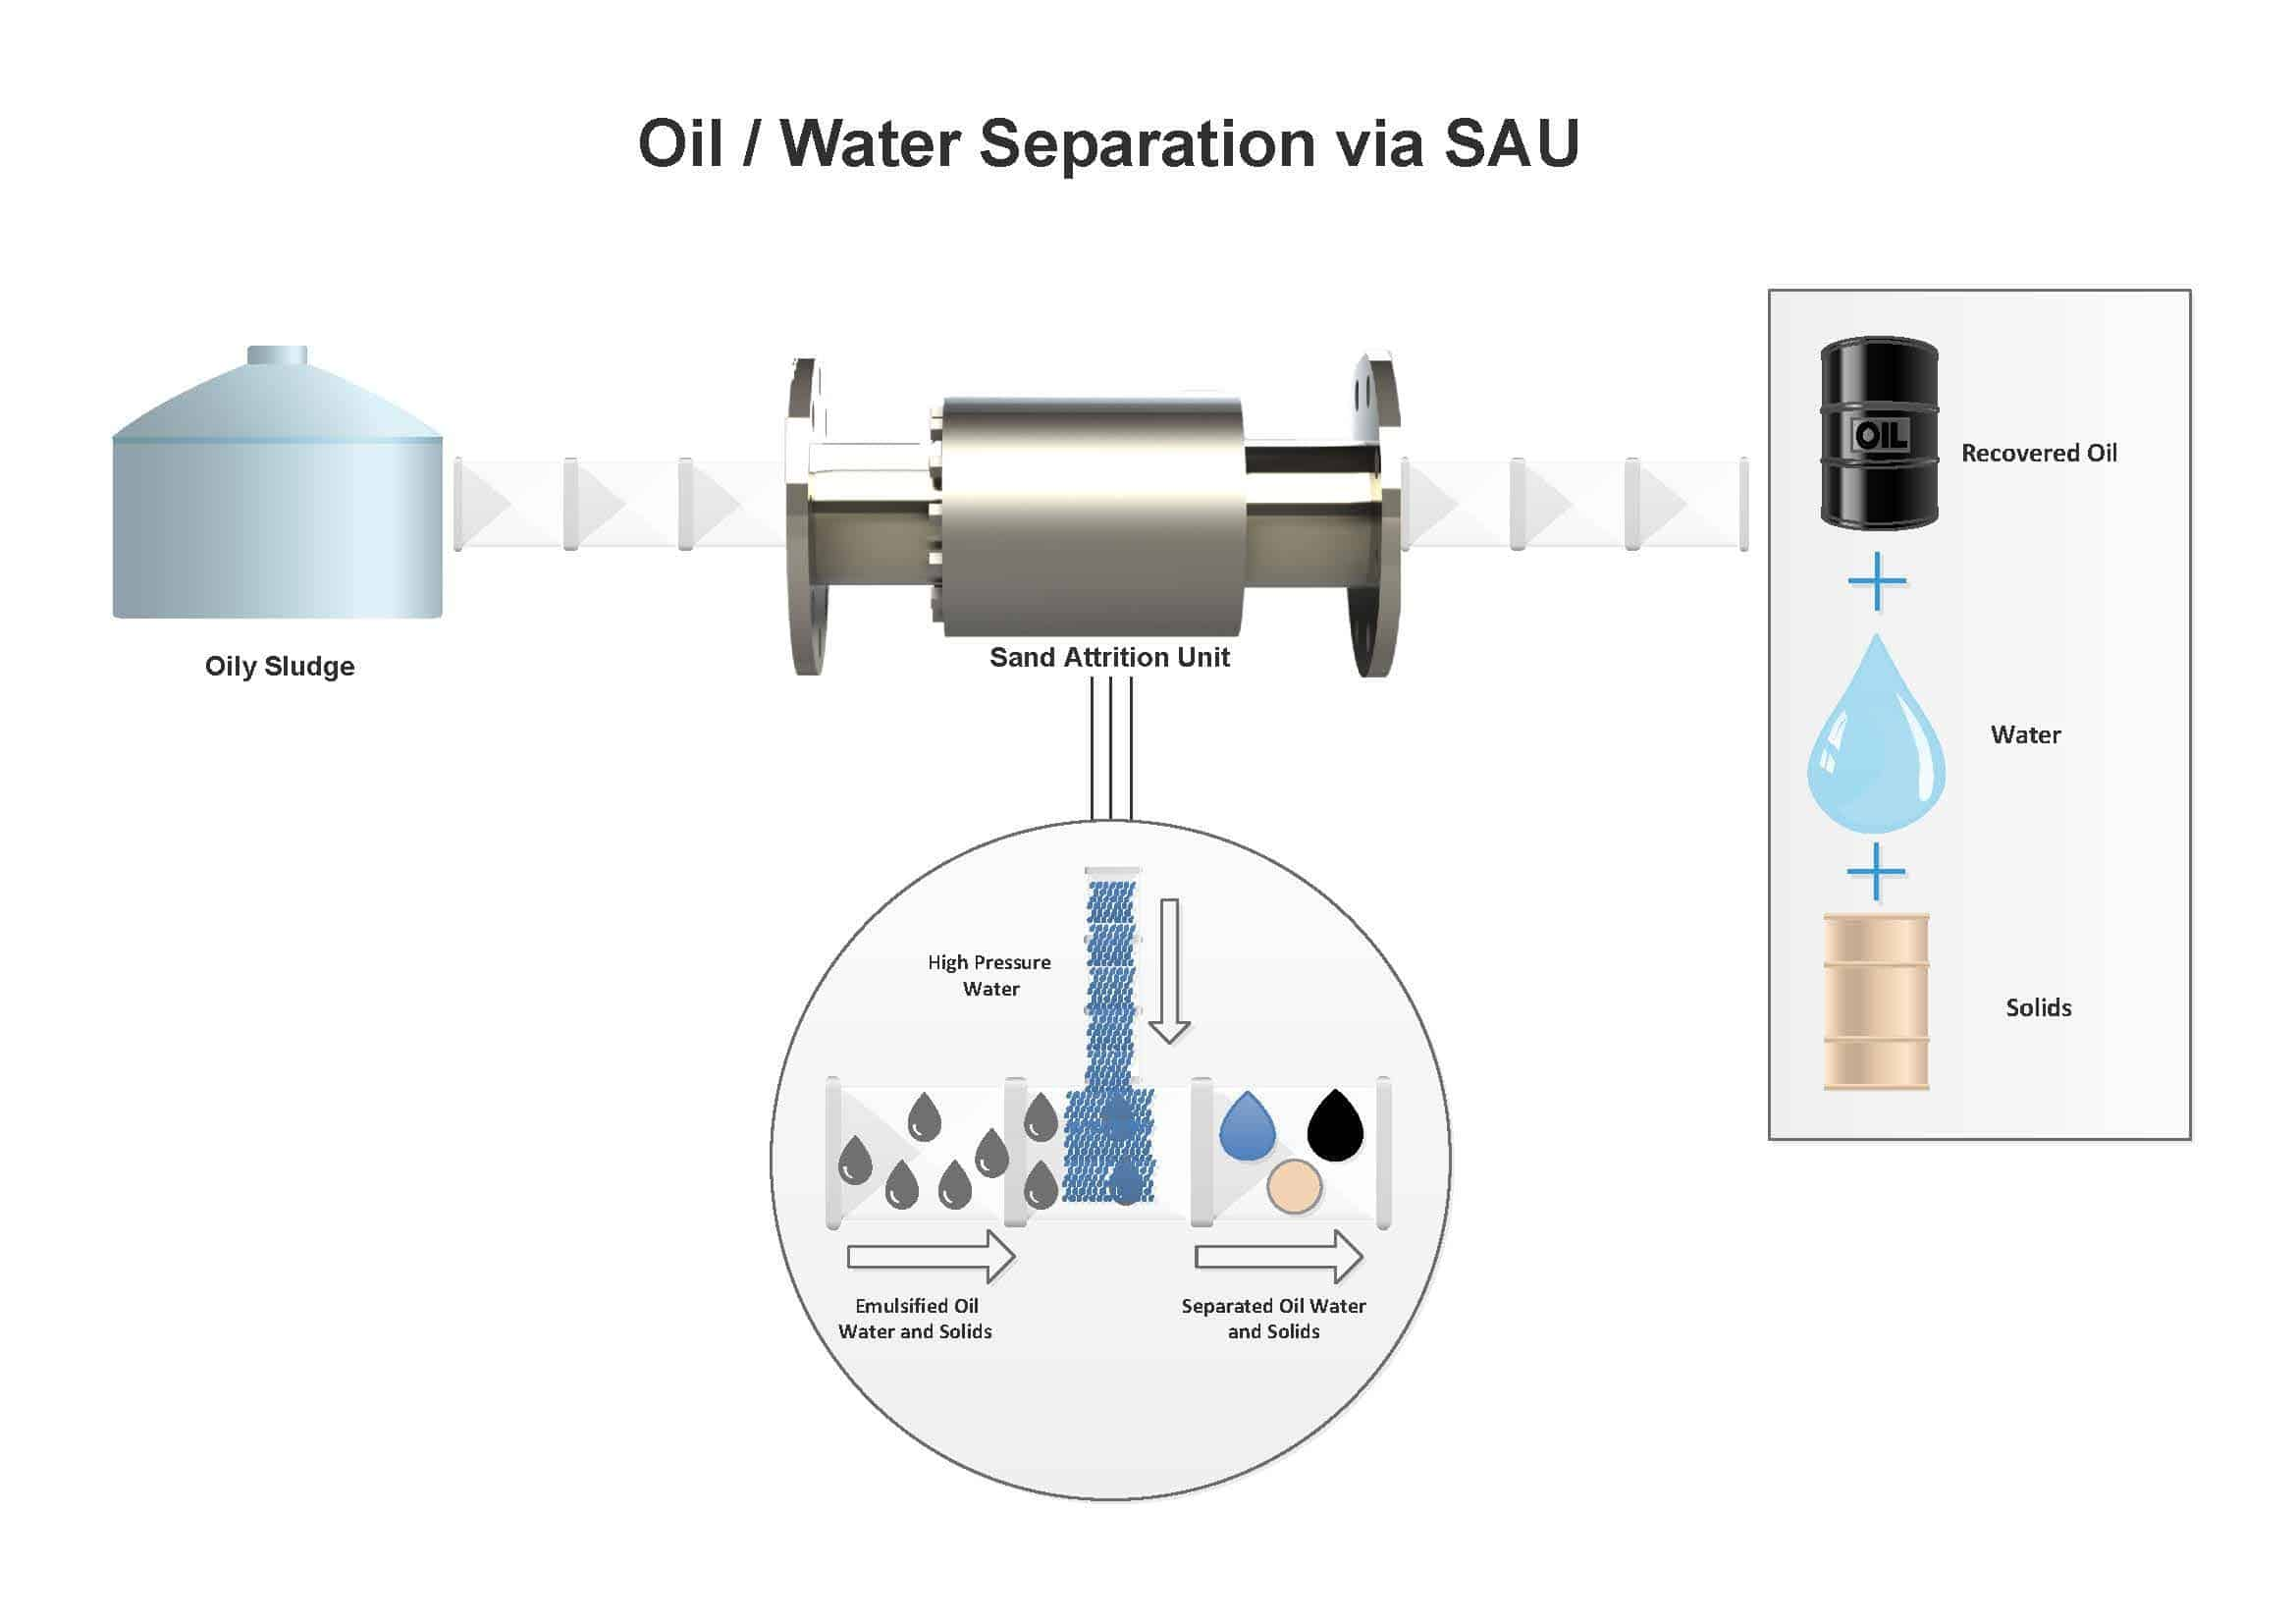 diagram of oil/water separation via sand attrition unit (SAU)